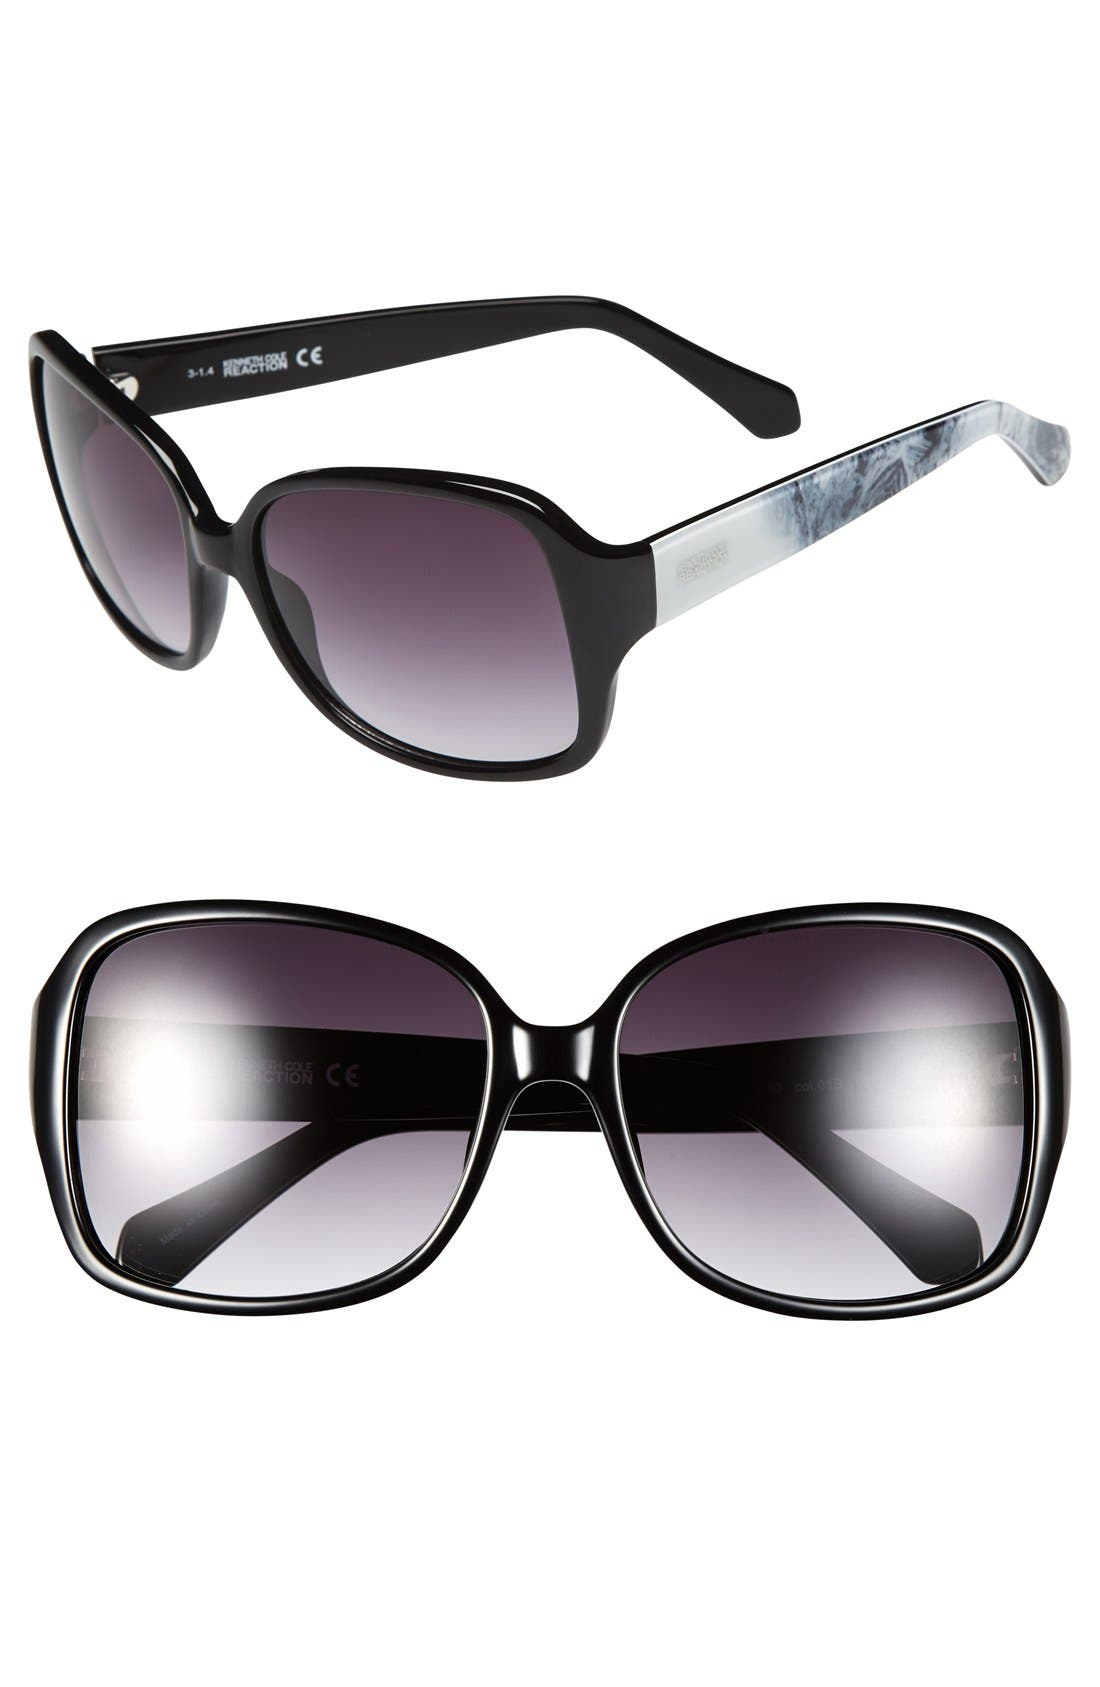 Alternate Image 1 Selected - Kenneth Cole Reaction 58mm Square Sunglasses